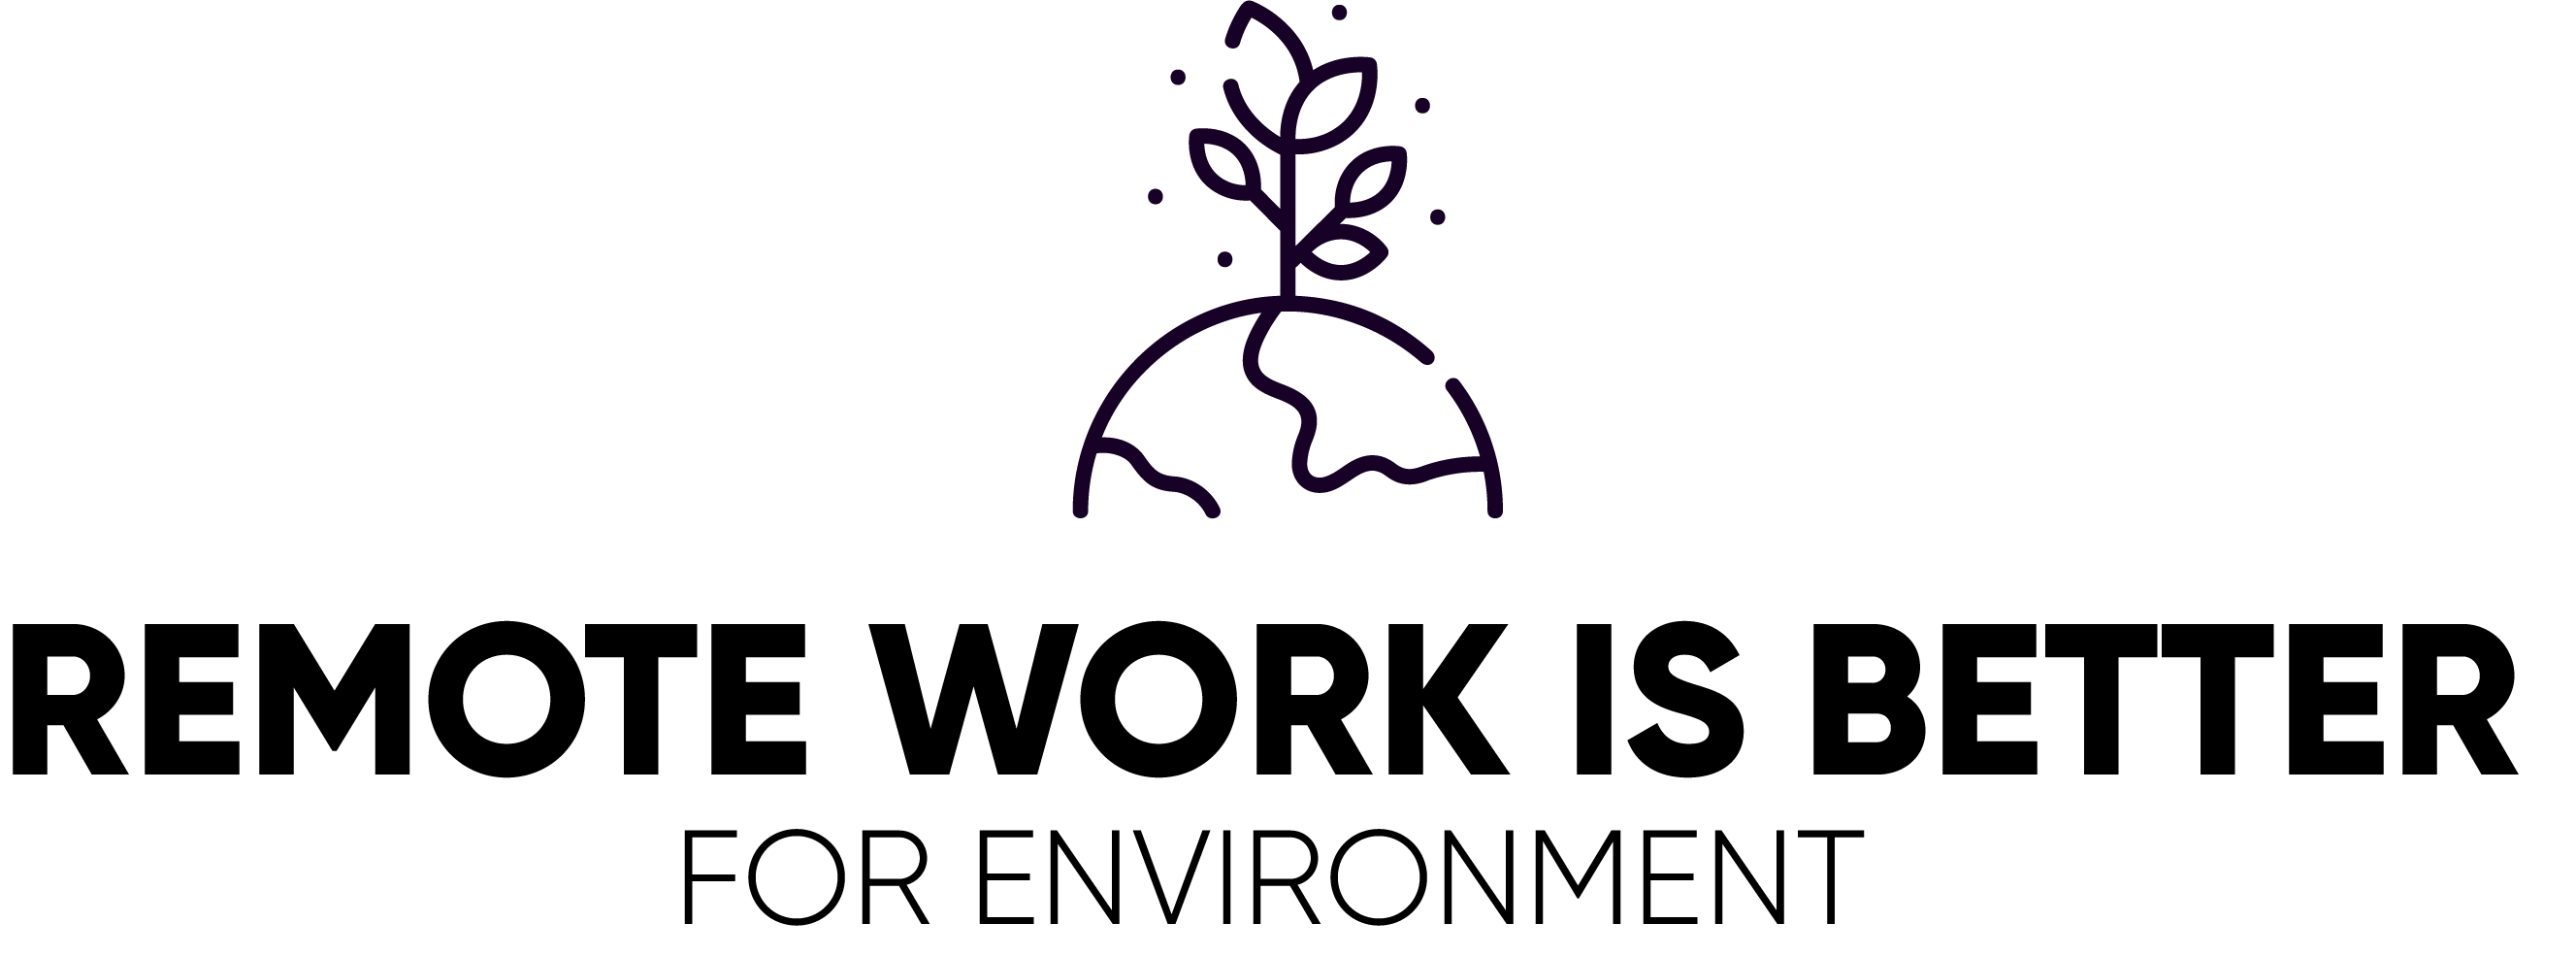 Remote Work Is Better for the Environment